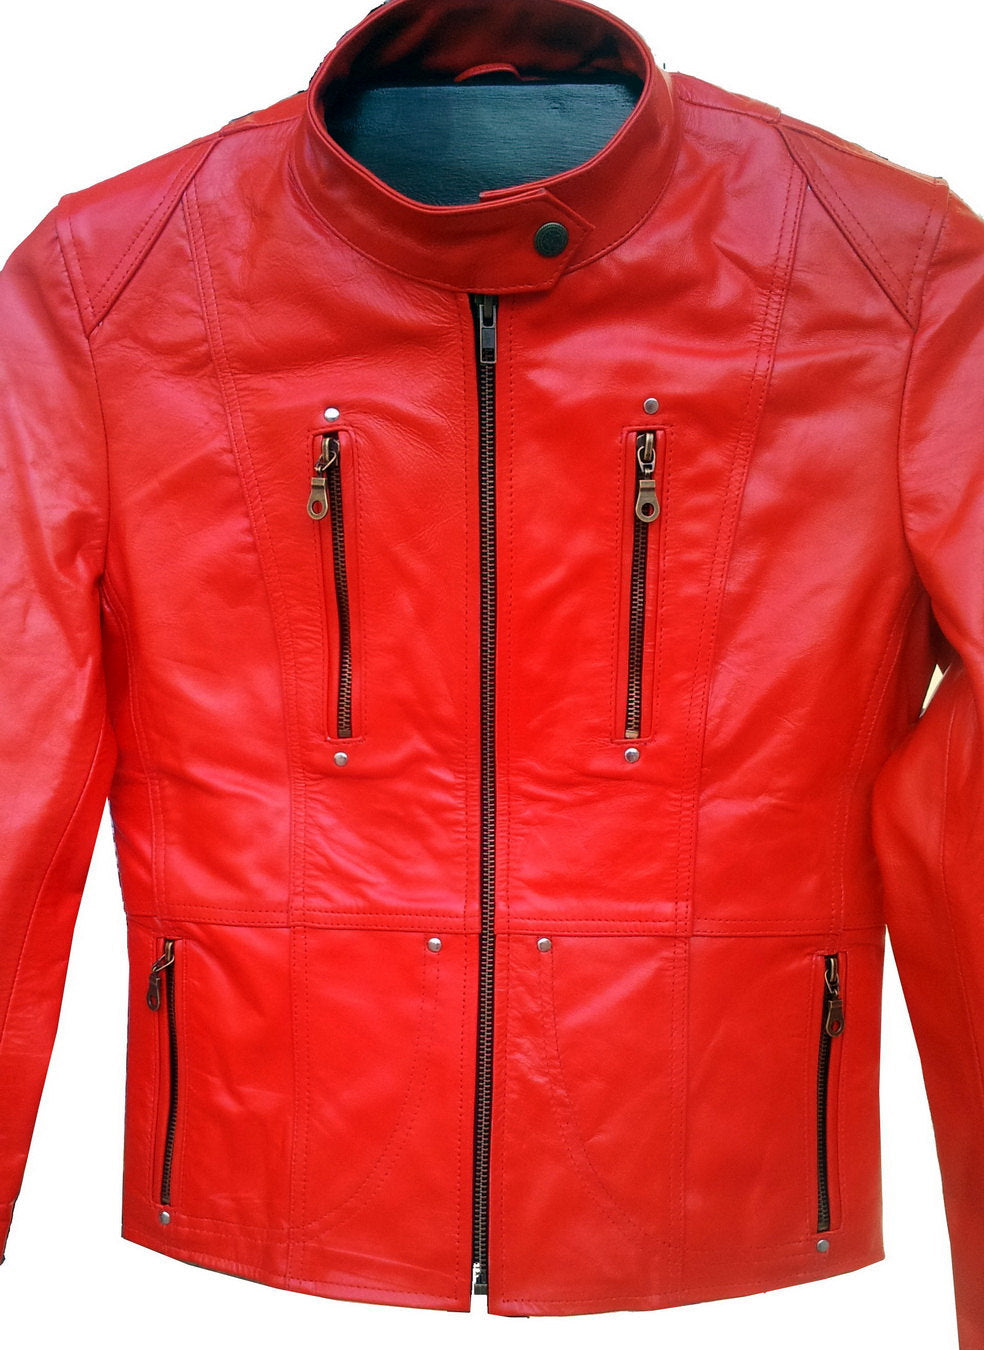 New Handmade Women Slim Fitted Red Leather Jacket